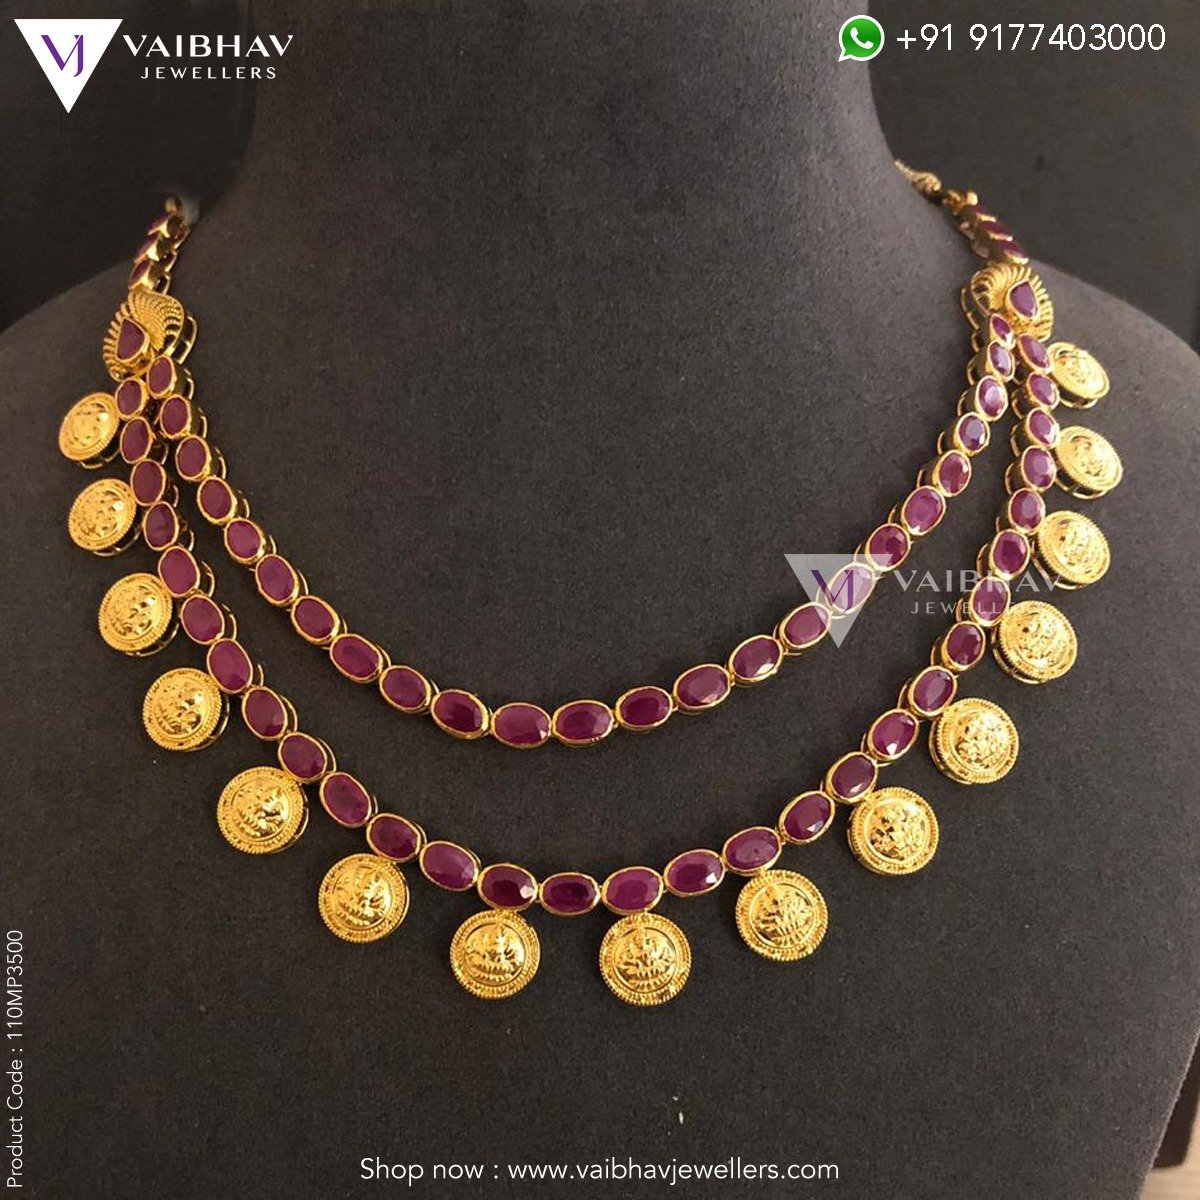 a45e47c342e61 Ruby necklace designs by Vaibhav Jewellers - Jewellery Designs